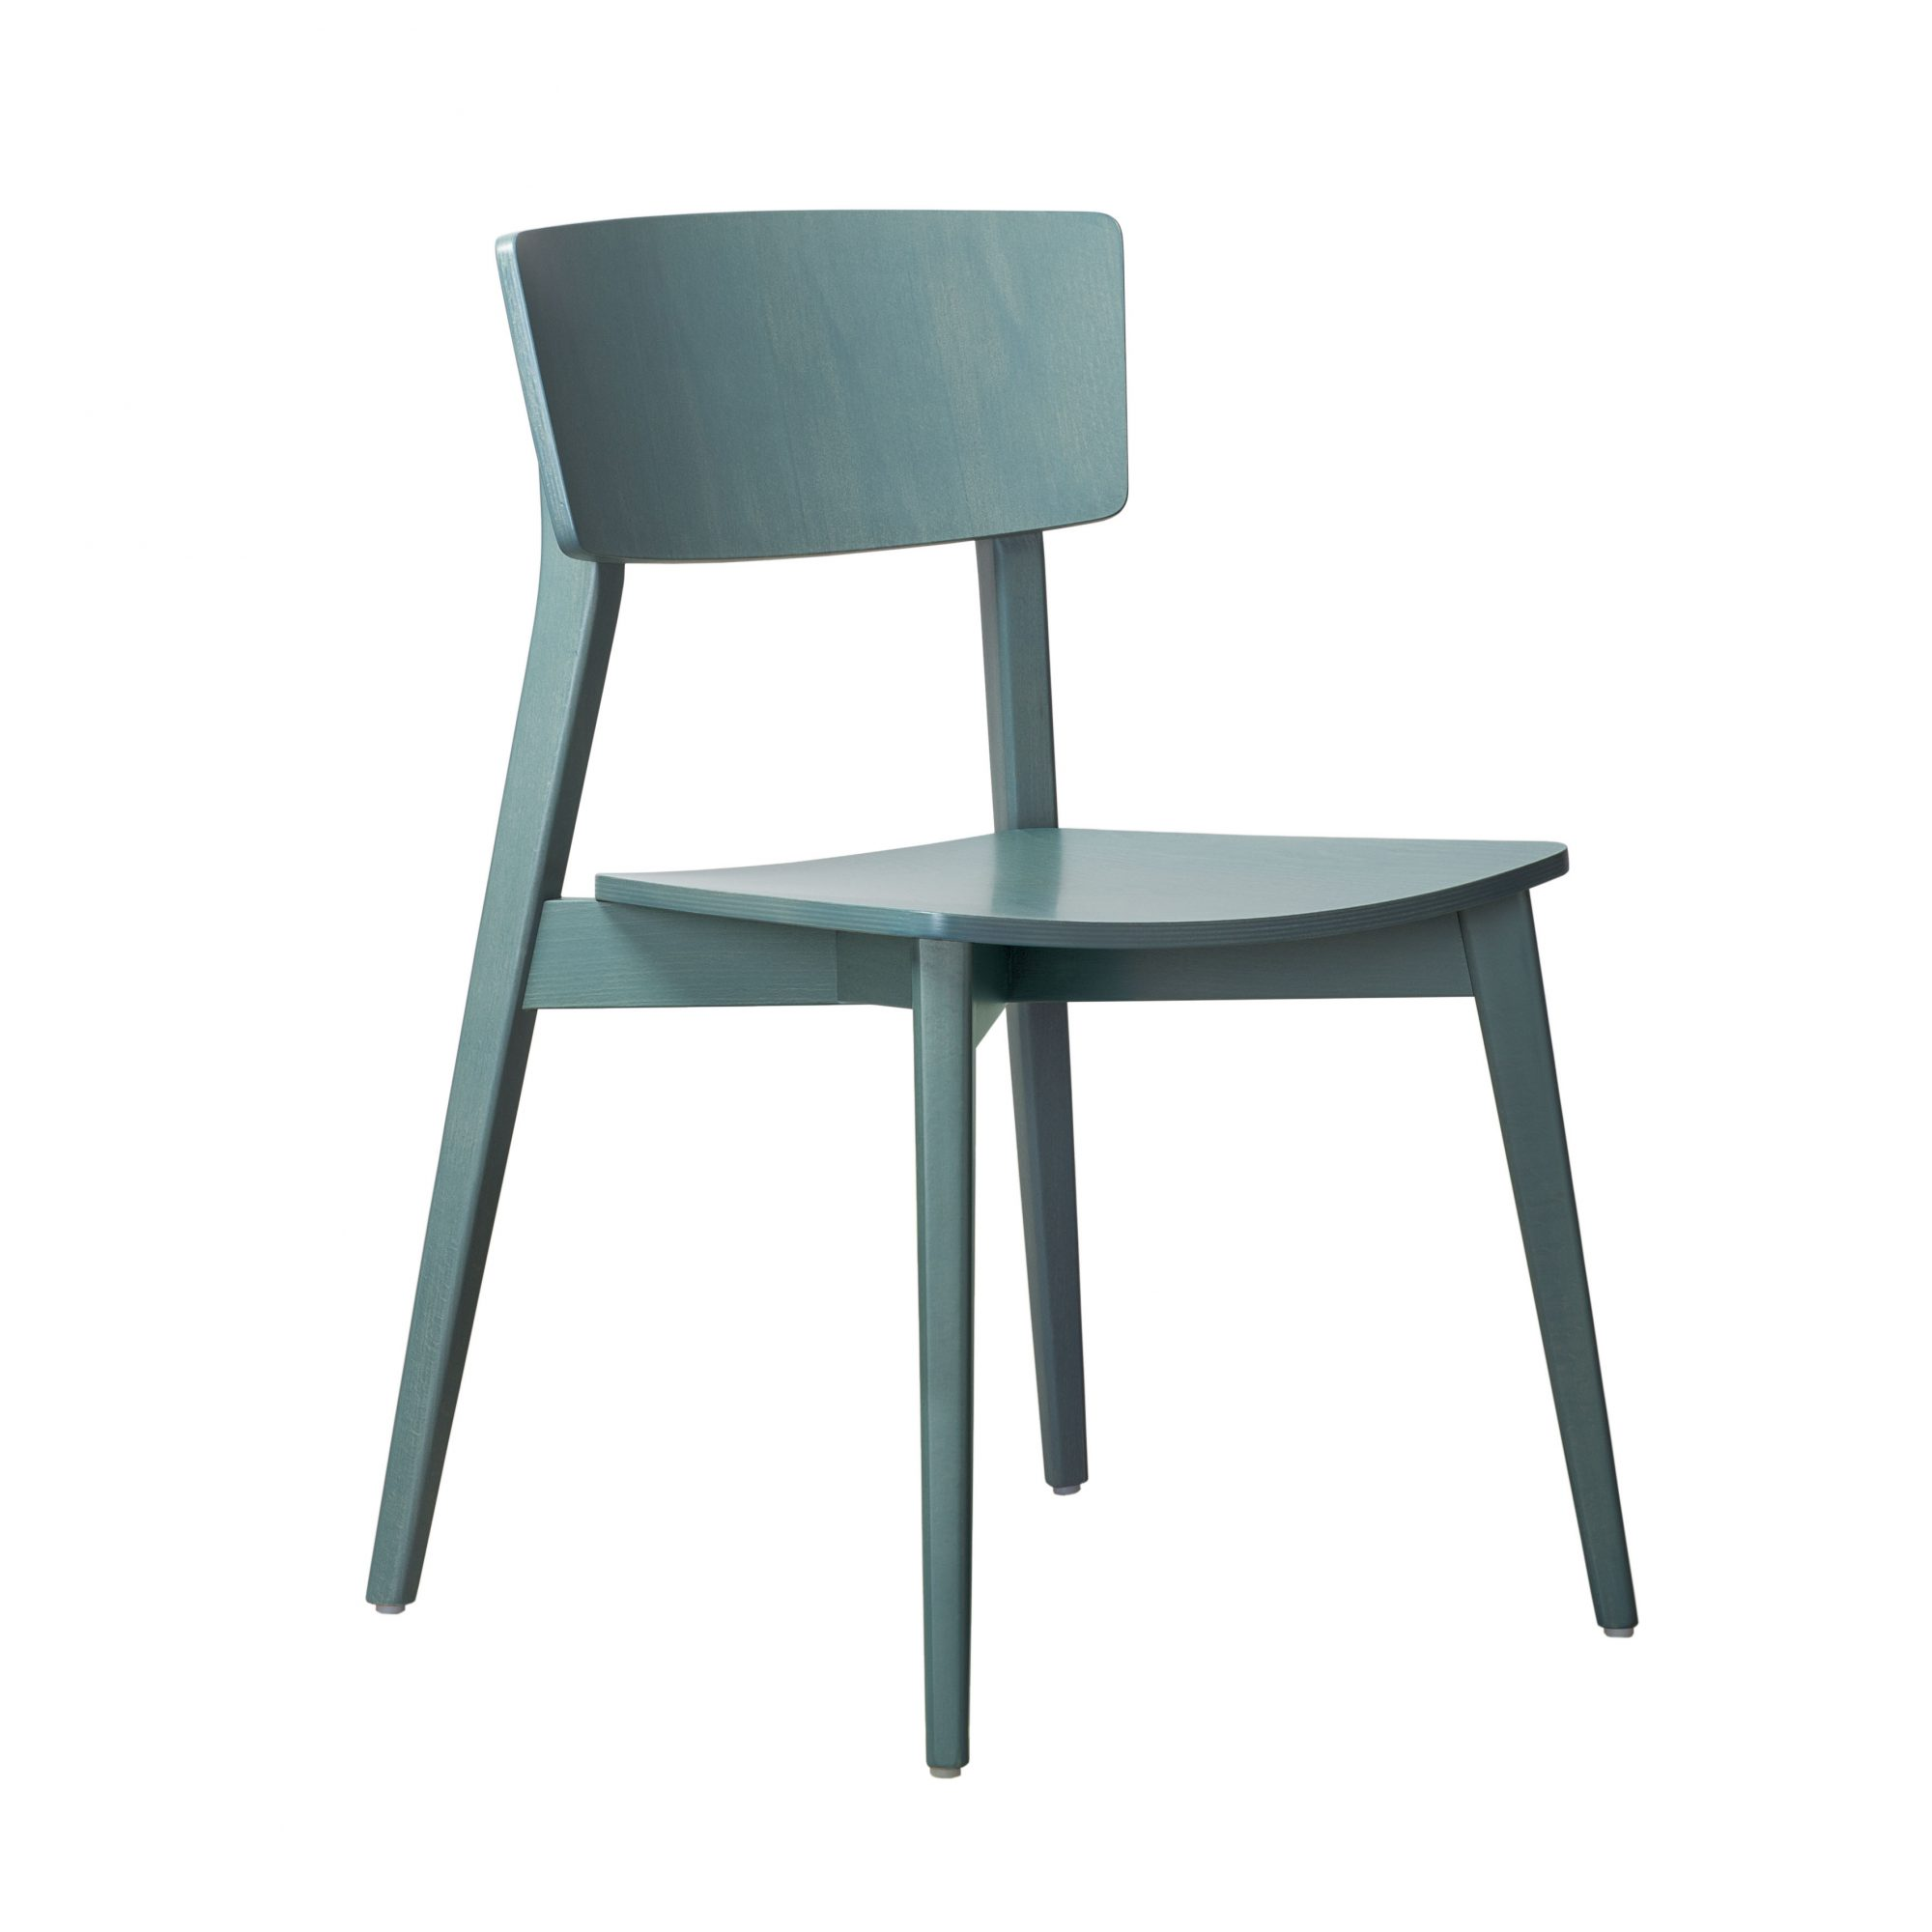 Hellen side chair telegraph contract furniture for H furniture ww chair